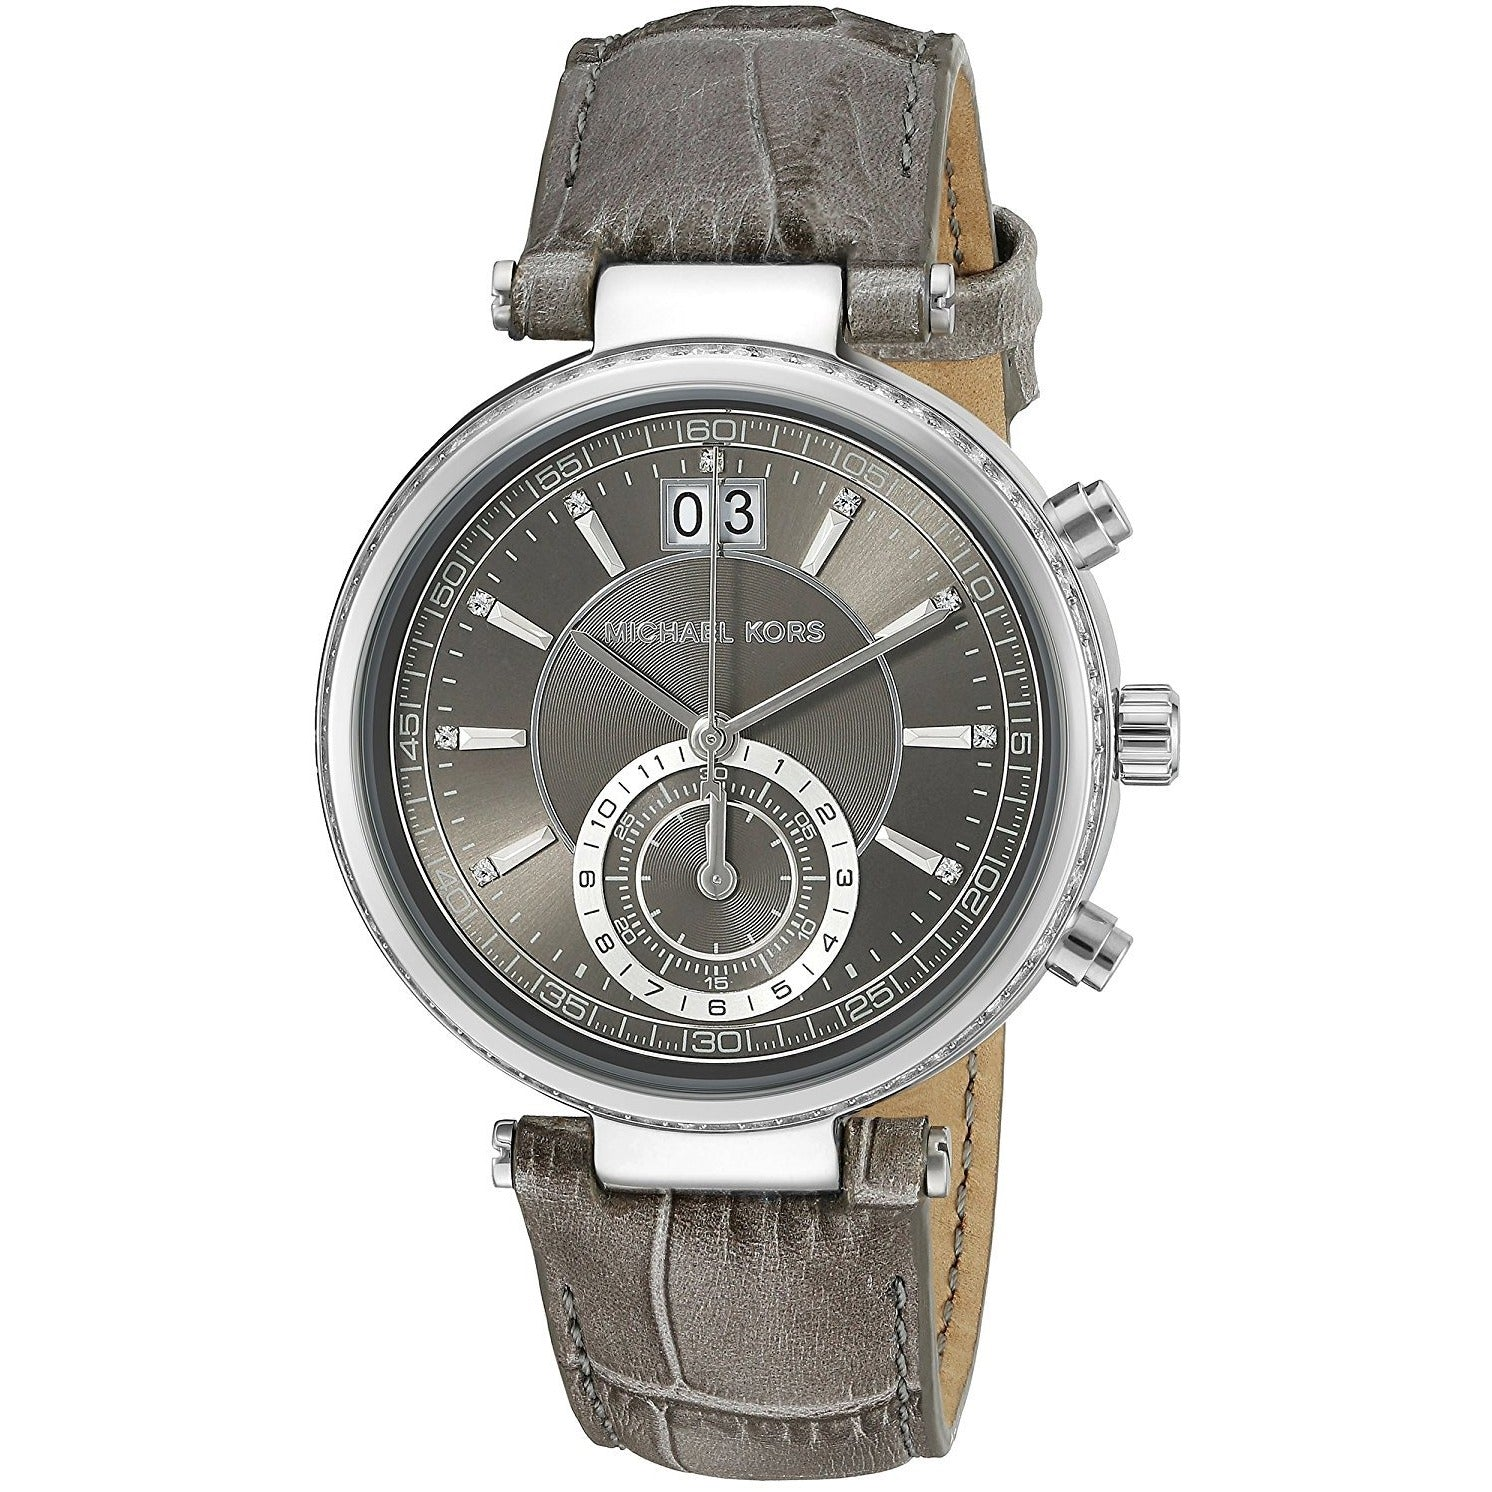 Michael Kors Women's Sawyer Grey Watch MK2432